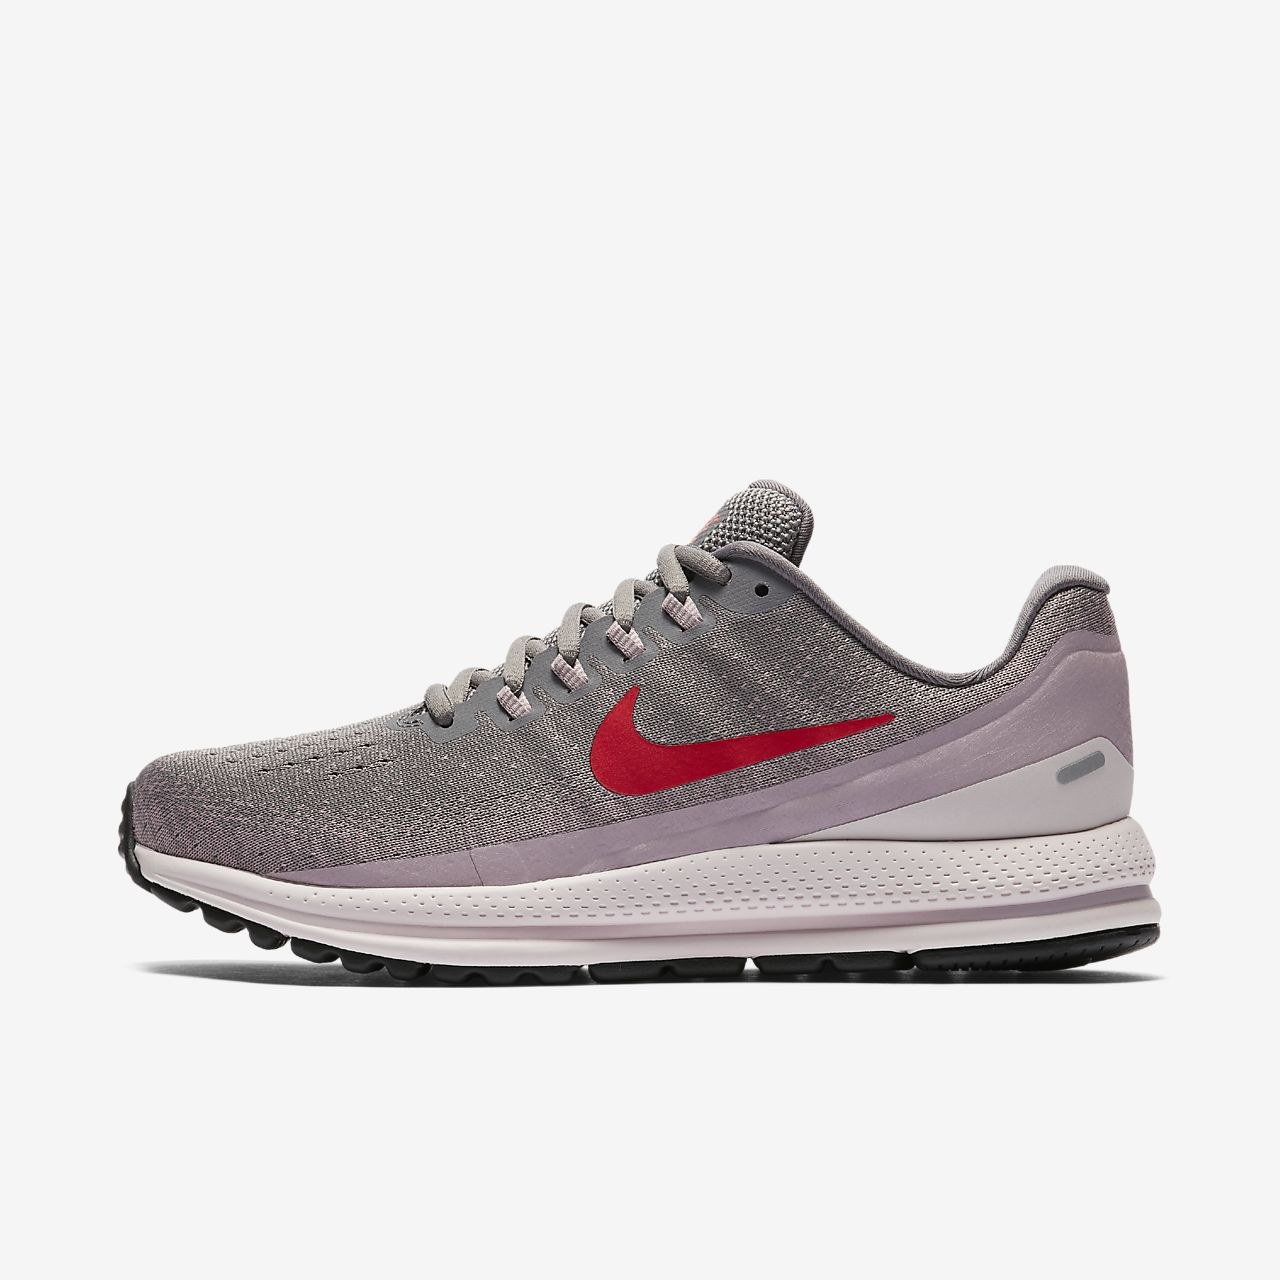 timeless design 82304 a0257 Nike Air Zoom Vomero 13